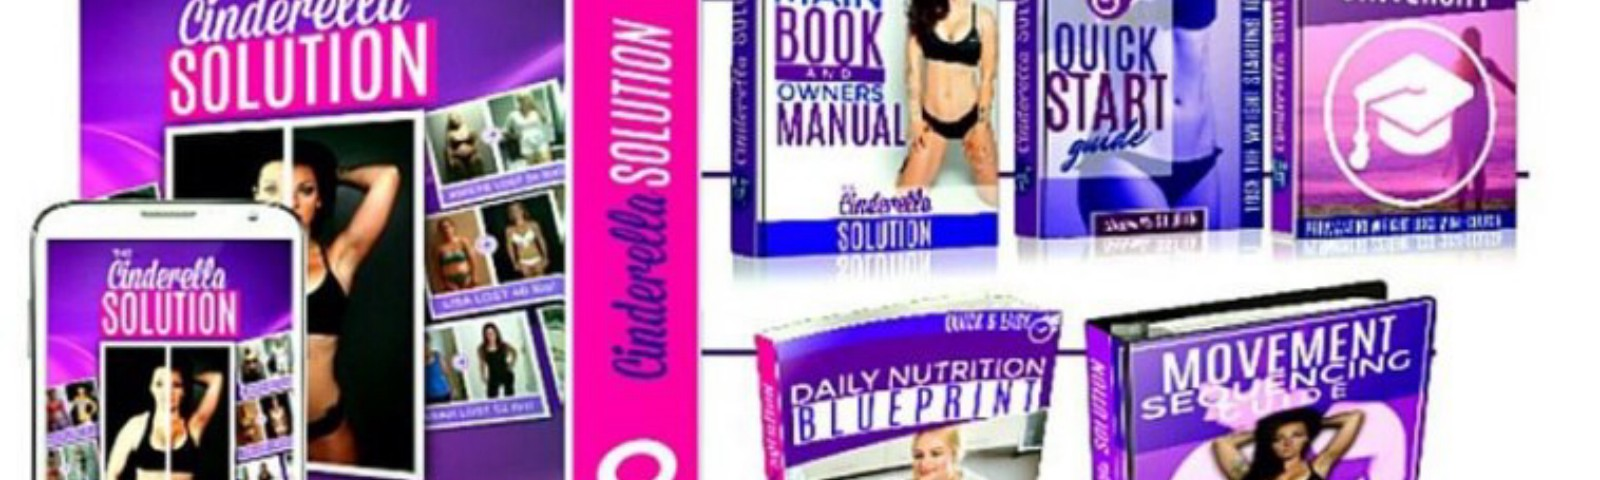 Cinderella Solution Diet  Deals Under 500